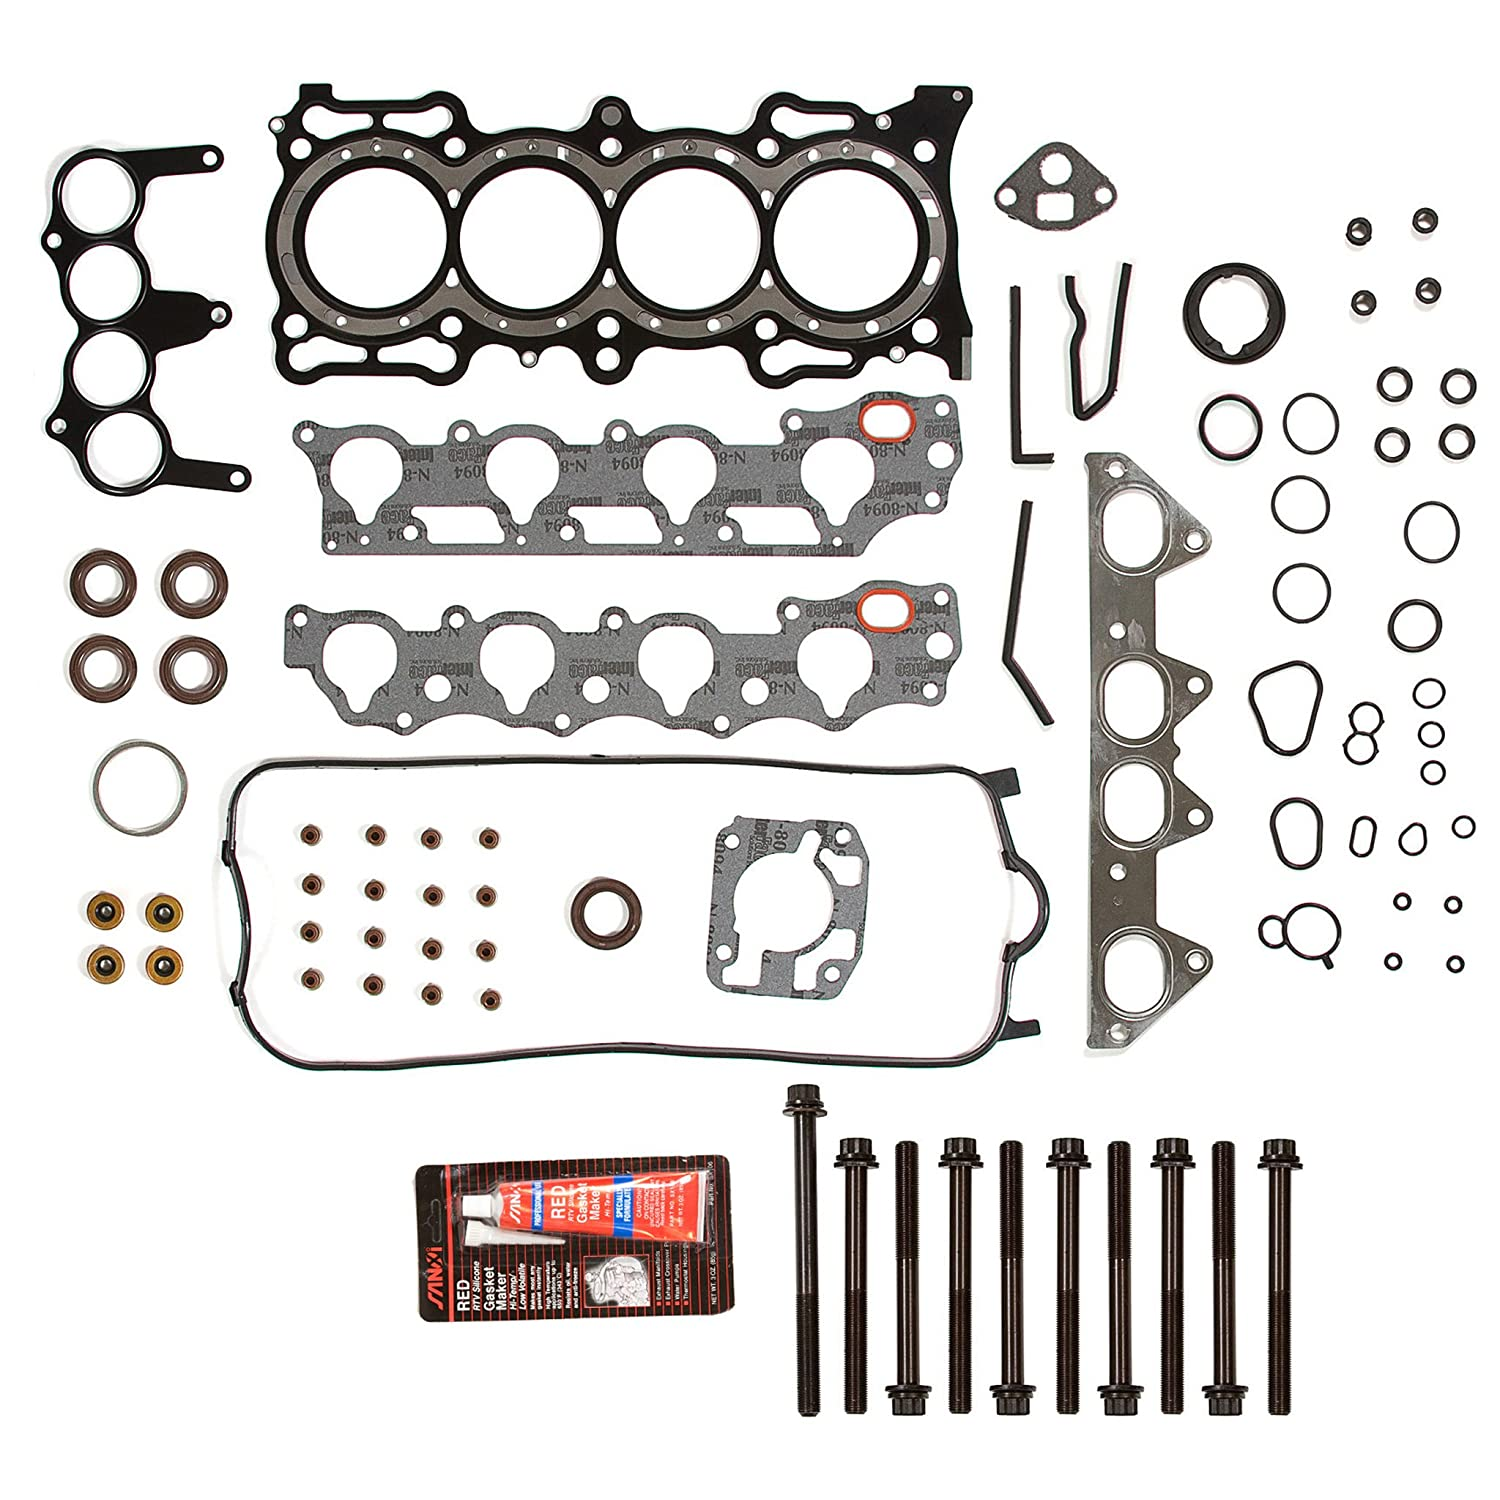 Evergreen HSHB4010 Cylinder Head Gasket Set Head Bolt